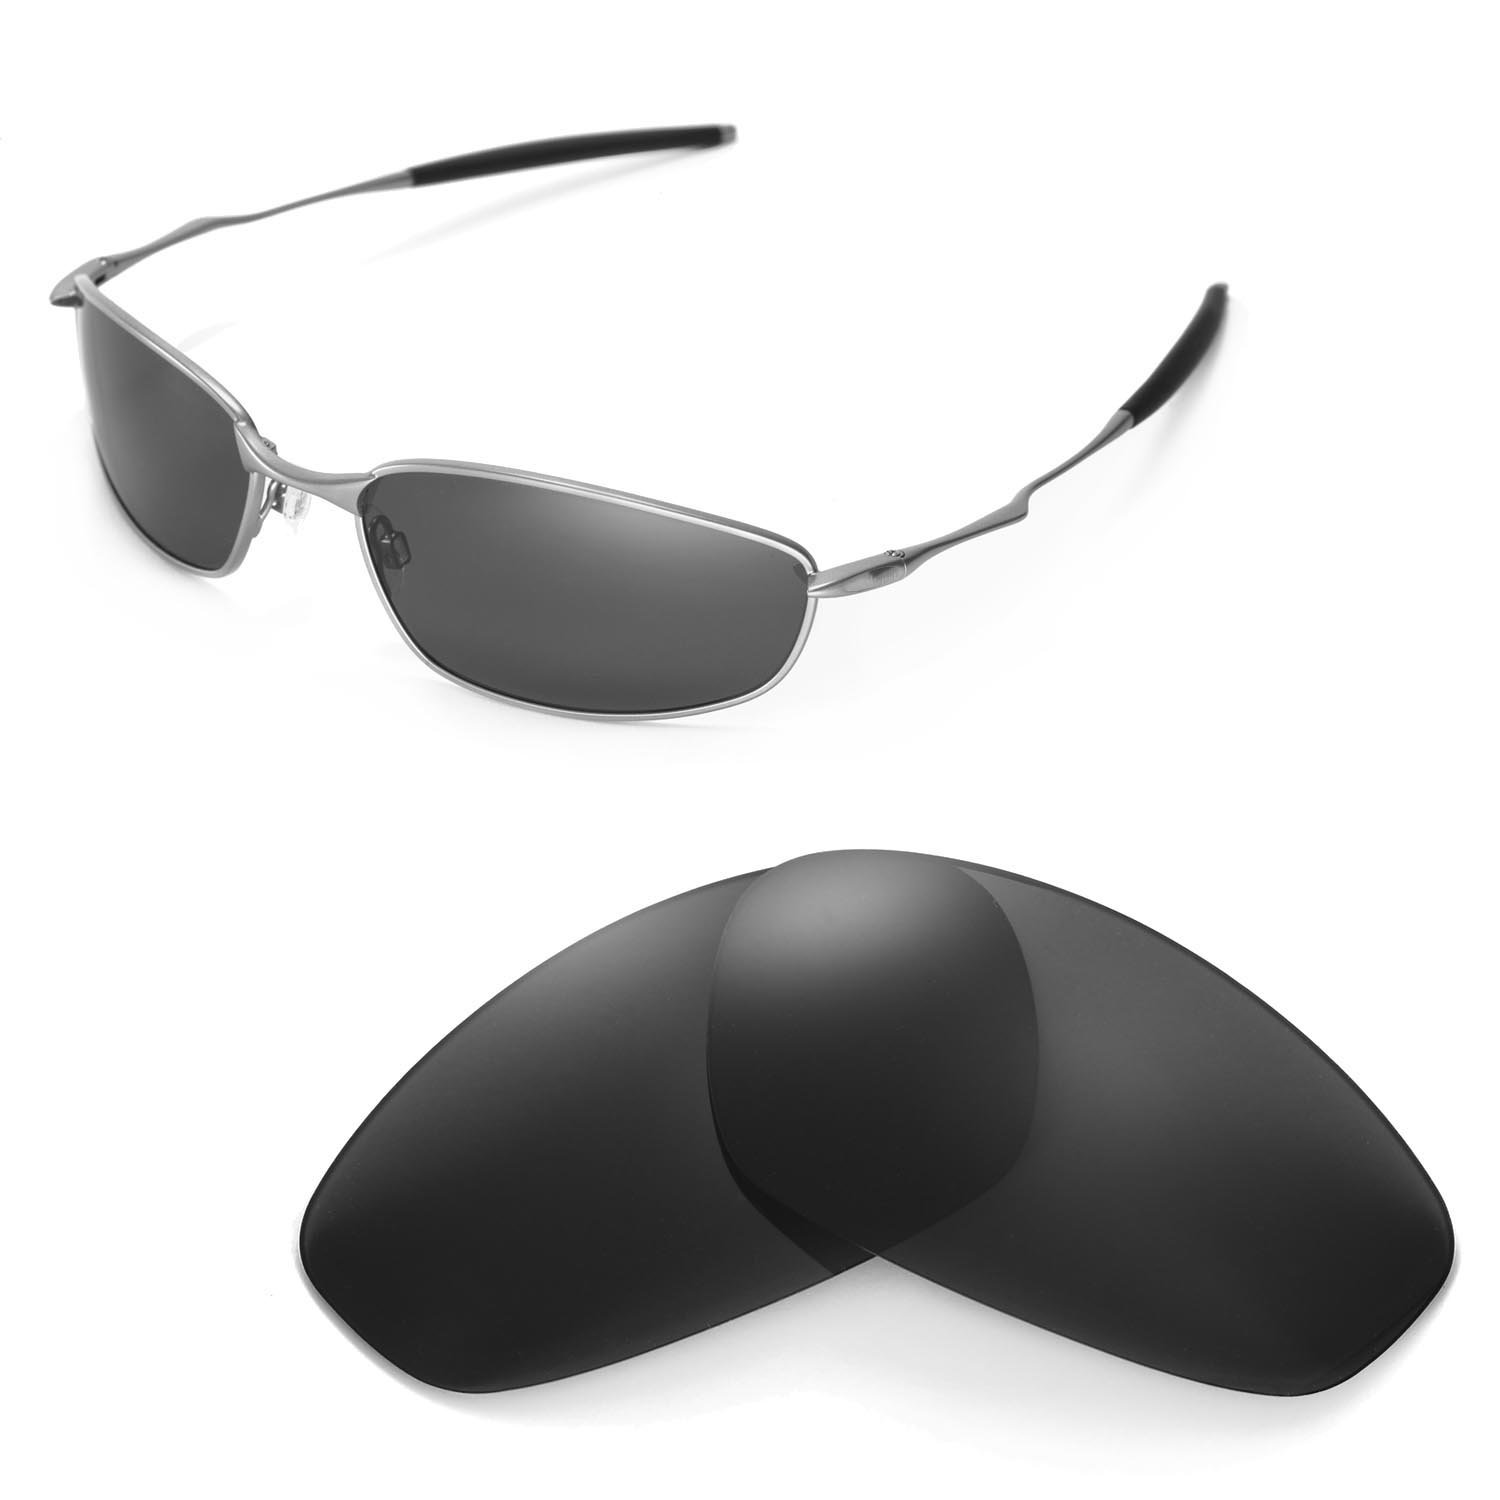 e8d01dee6d6 Walleva Replacement Lenses for Oakley Whisker Sunglasses - Multiple Options  (24K Gold Mirror Coated - Polarized)  Amazon.co.uk  Clothing